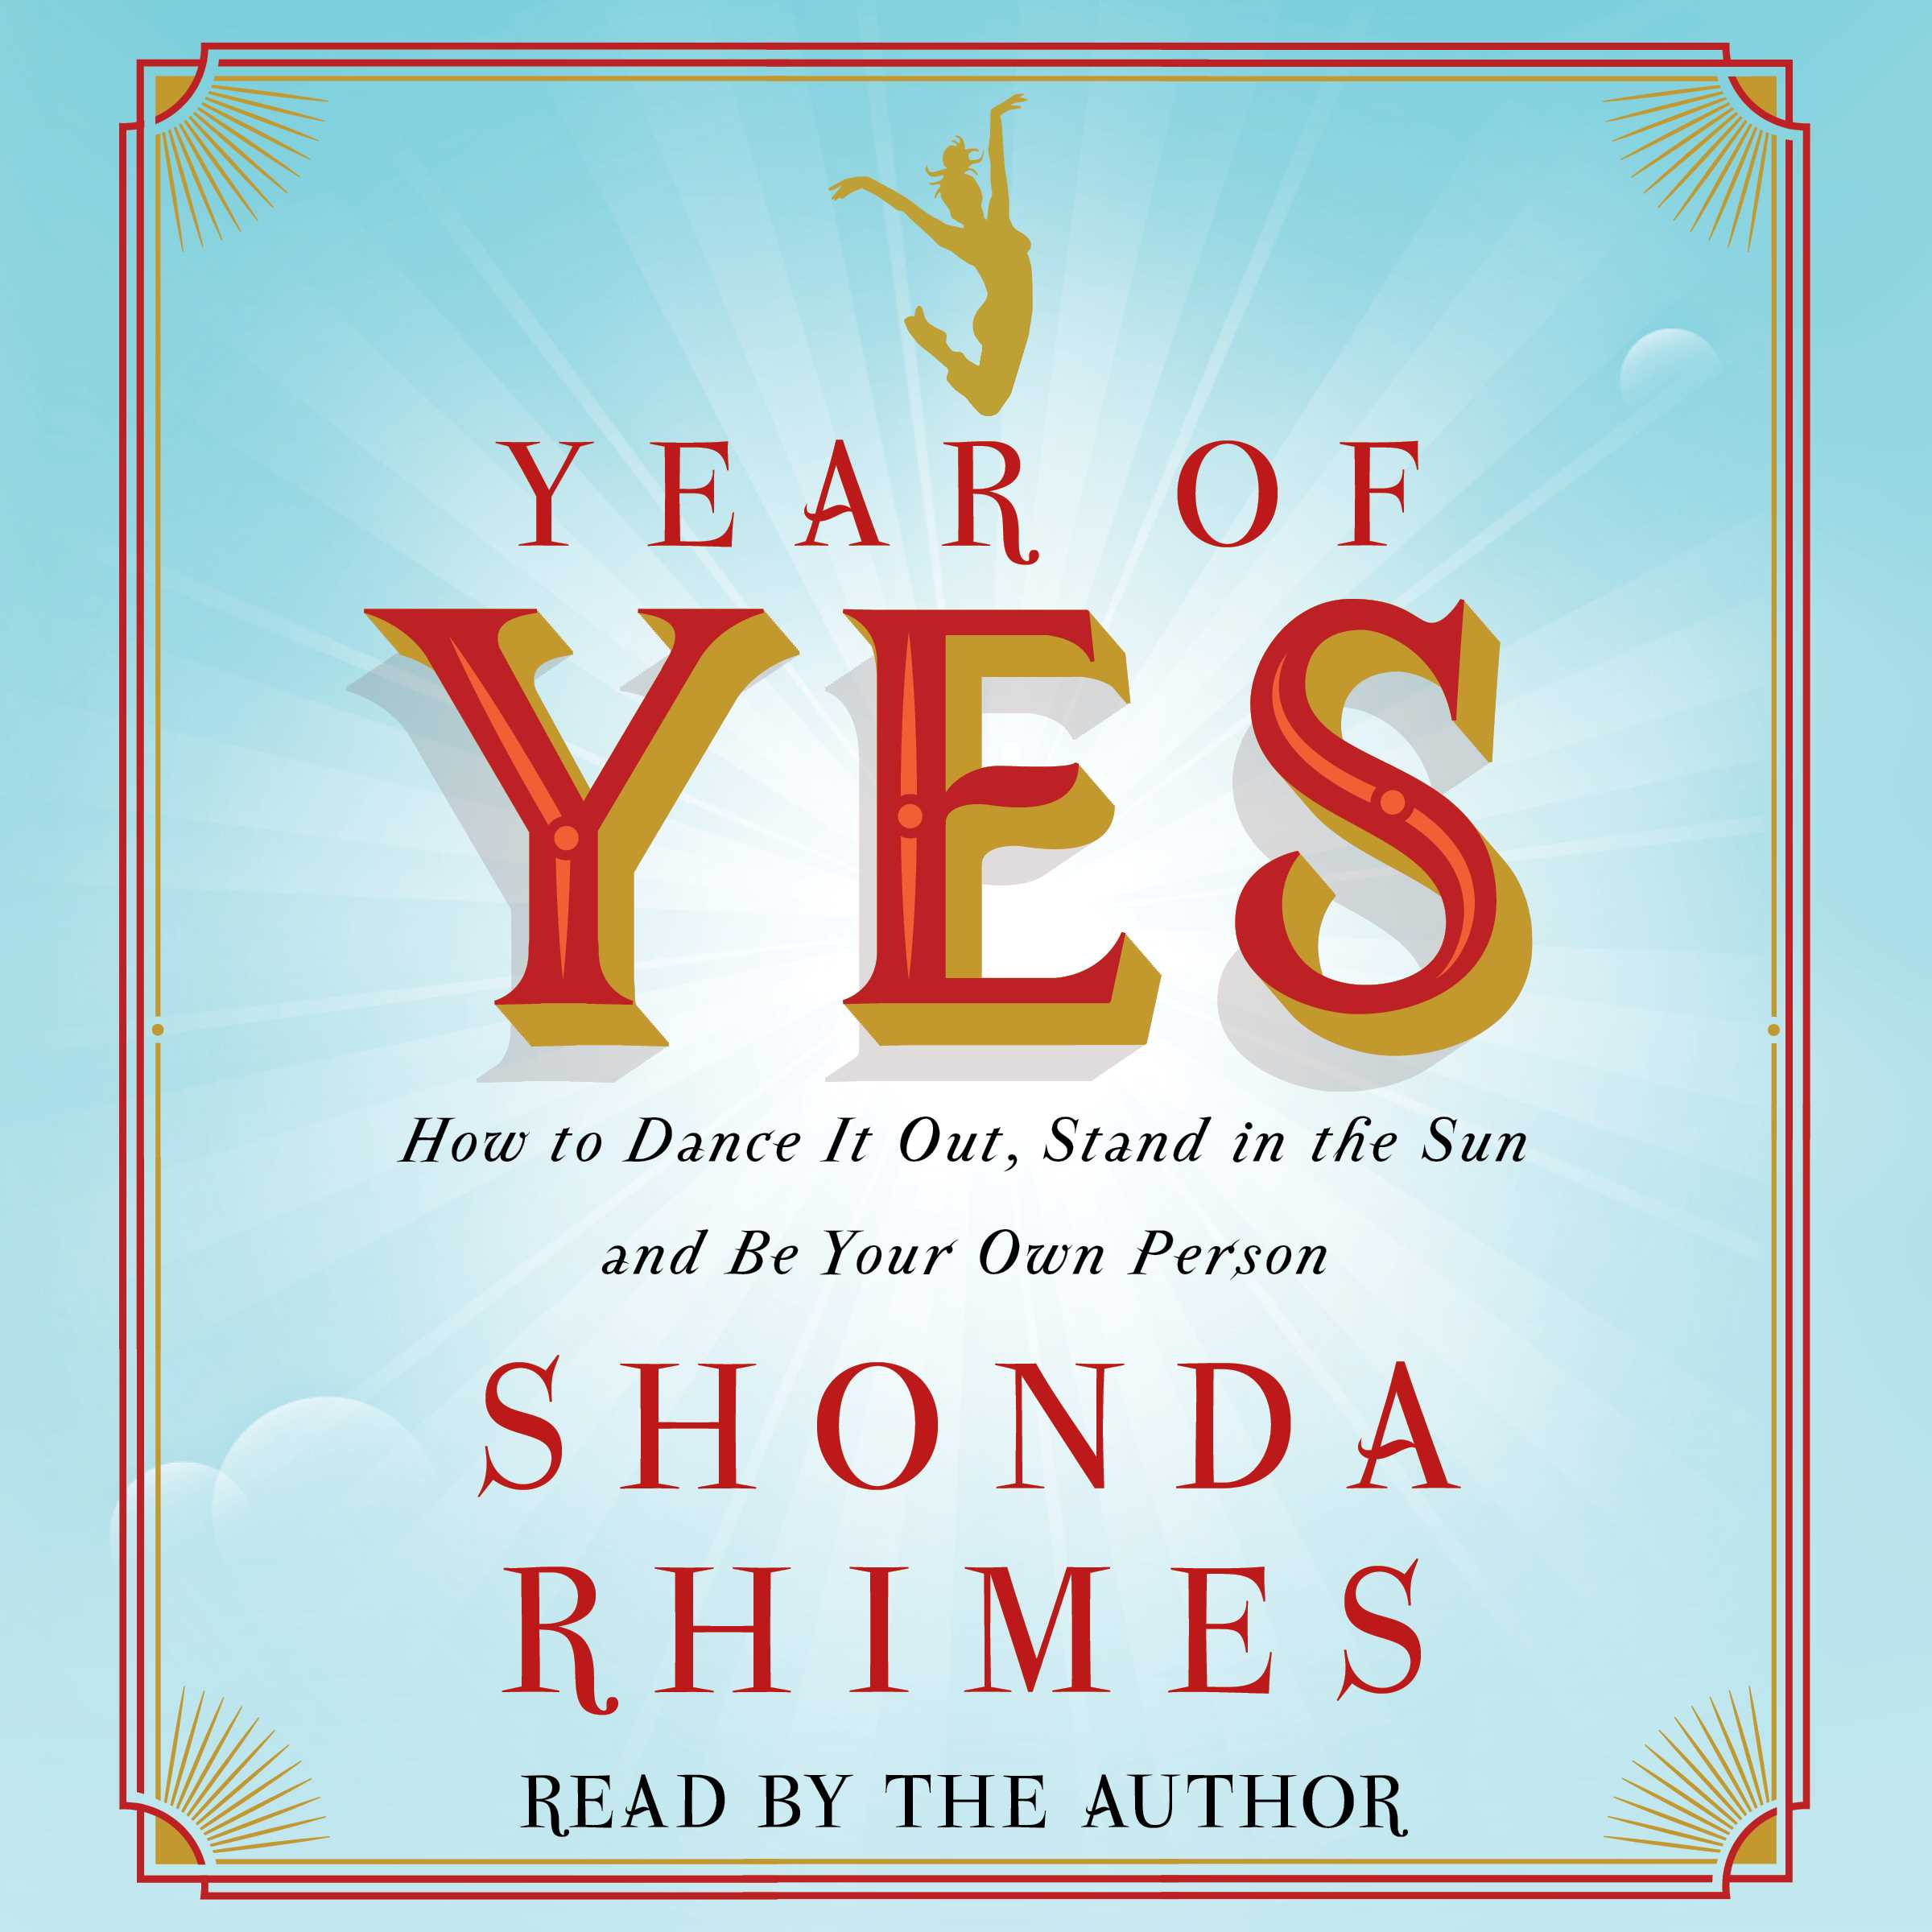 Year of Yes Audiobook by Shonda Rhimes | Official Publisher Page ...